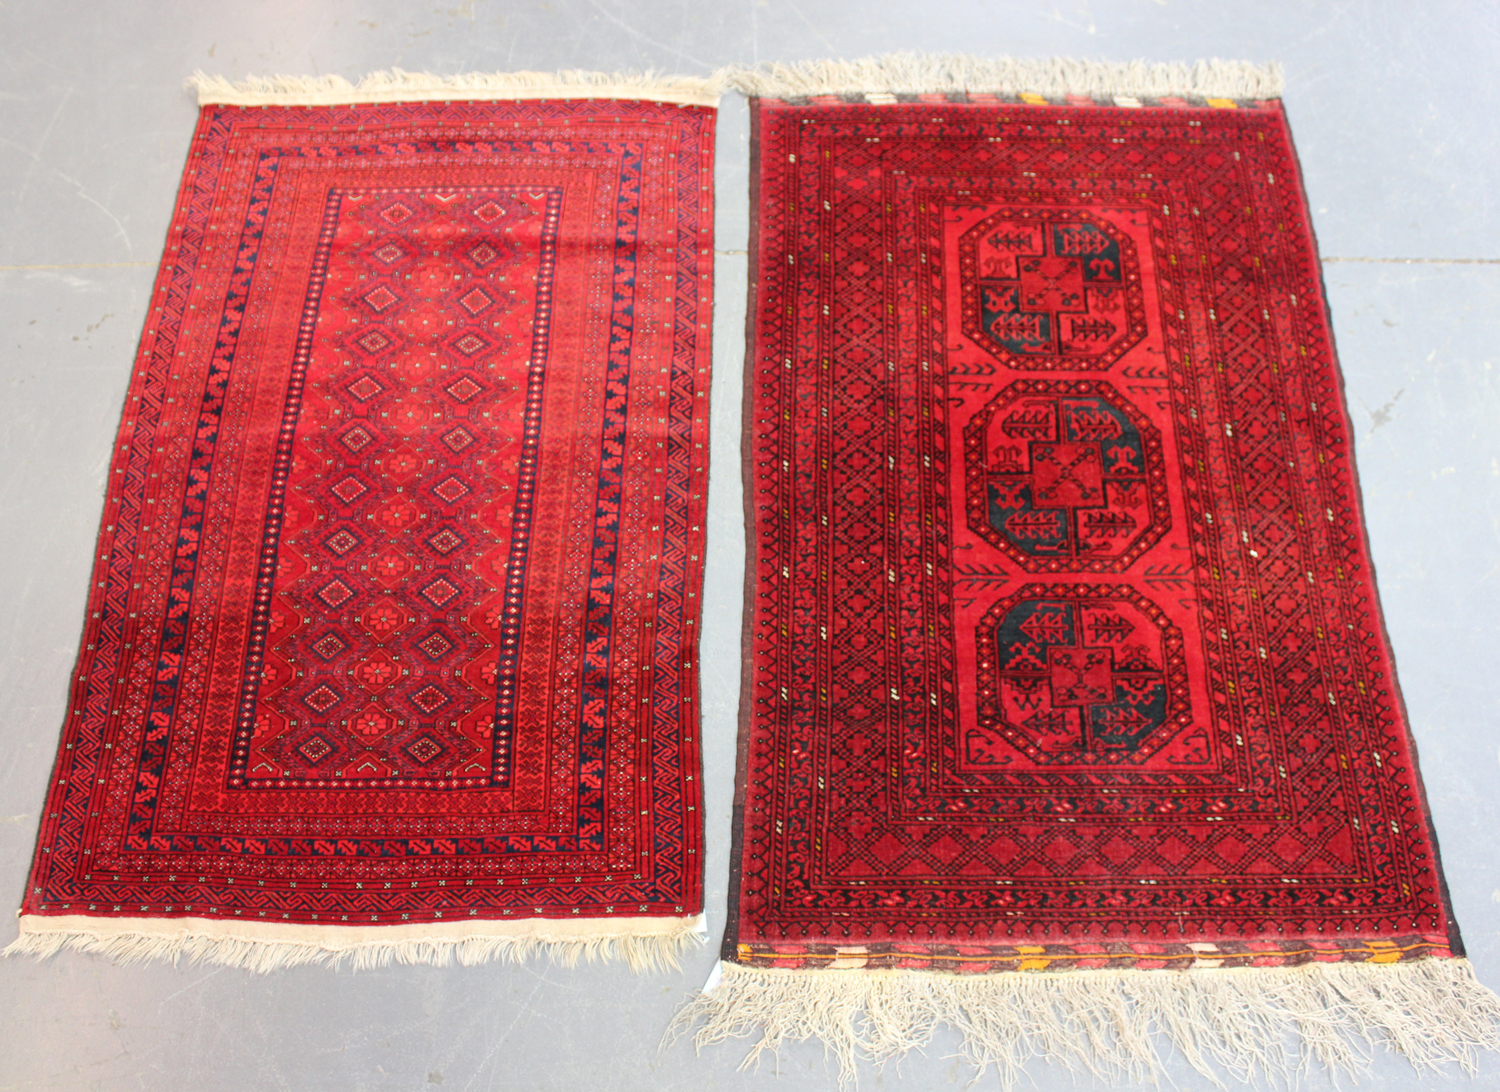 A small Afghan rug, late 20th century, 160cm x 102cm, together with another similar Afghan rug,